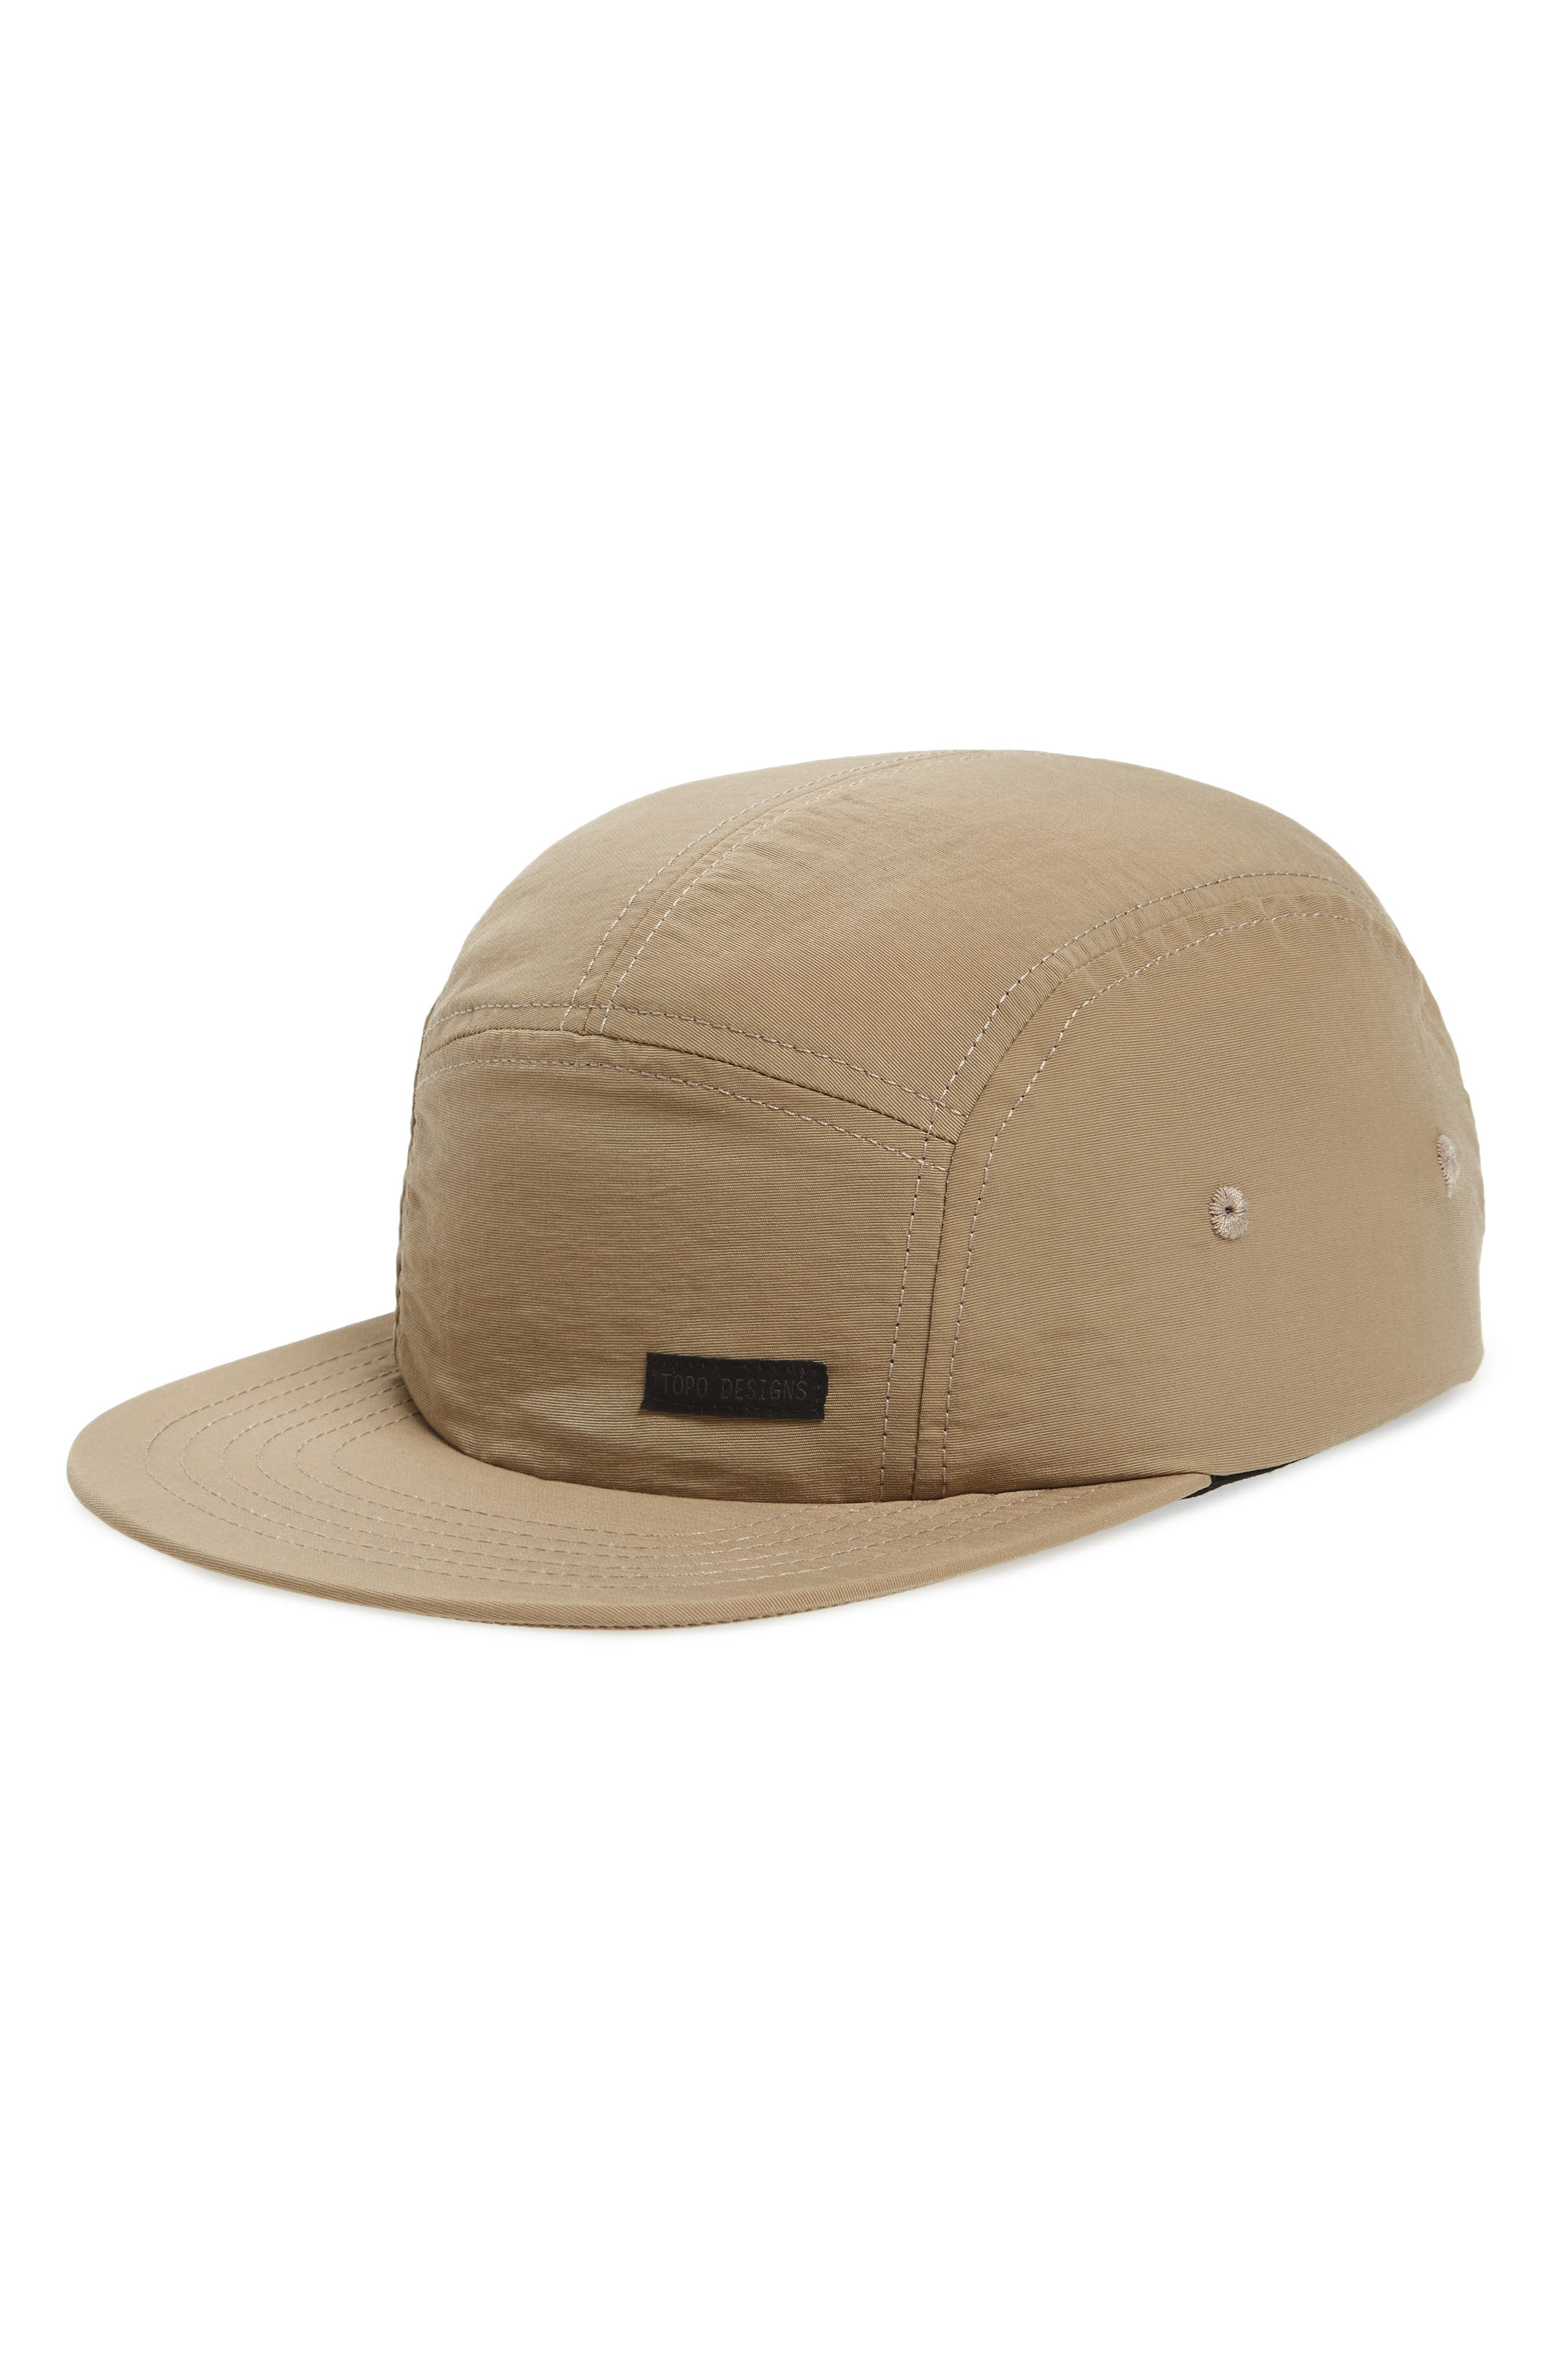 Topo Designs Nylon Camp Cap